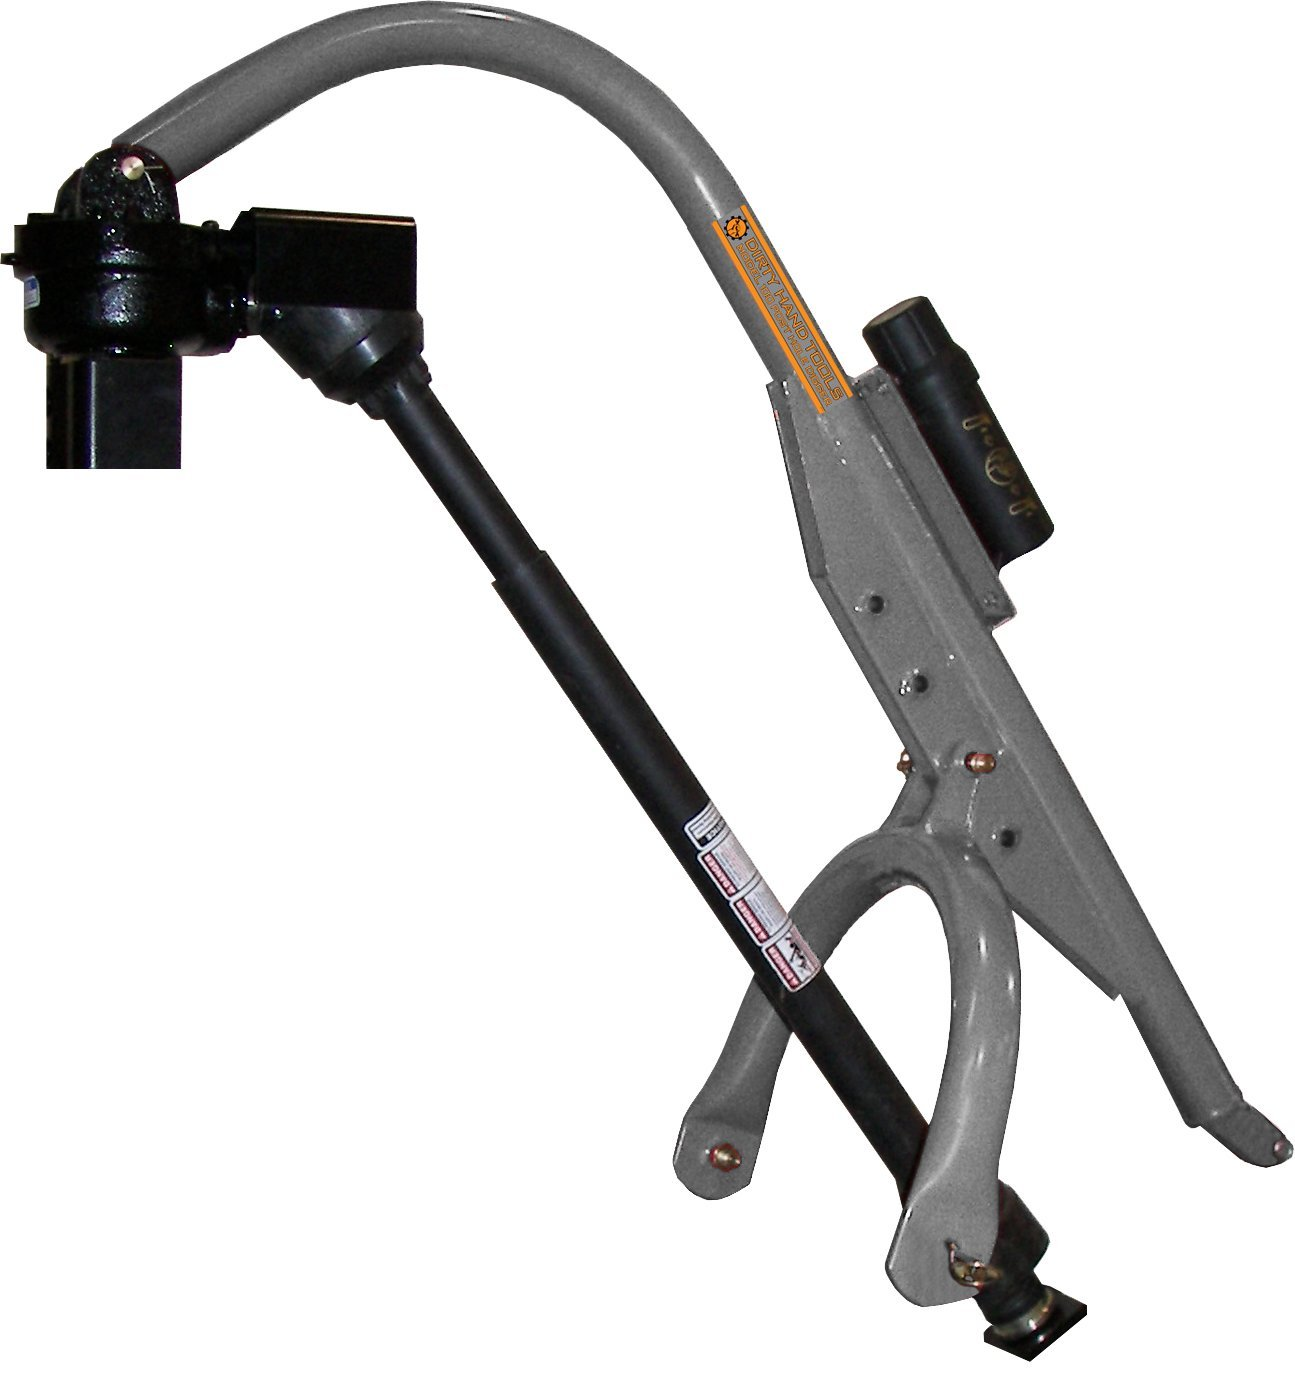 Dirty Hand Tools 100498 Model 100 Three-point Hitch Post Hole Digger For 6 - 12' Augers